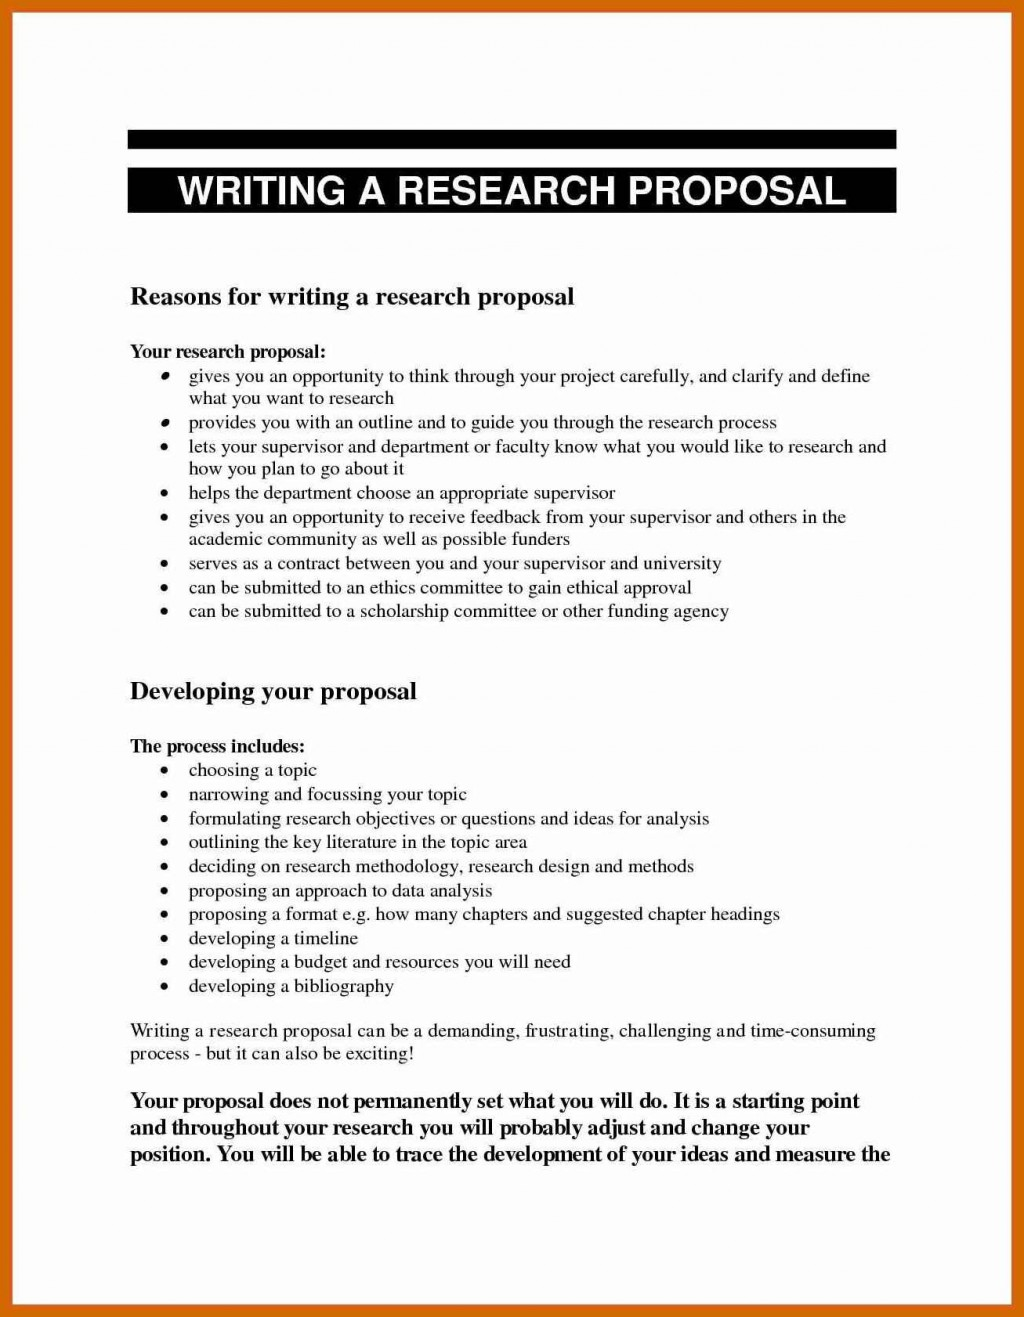 015 Researchaperroposal Sample Writing Example Essay Topics Questions Best Company Format Of Marvelous A Research Paper Proposal Examples Quantitative Apa Large